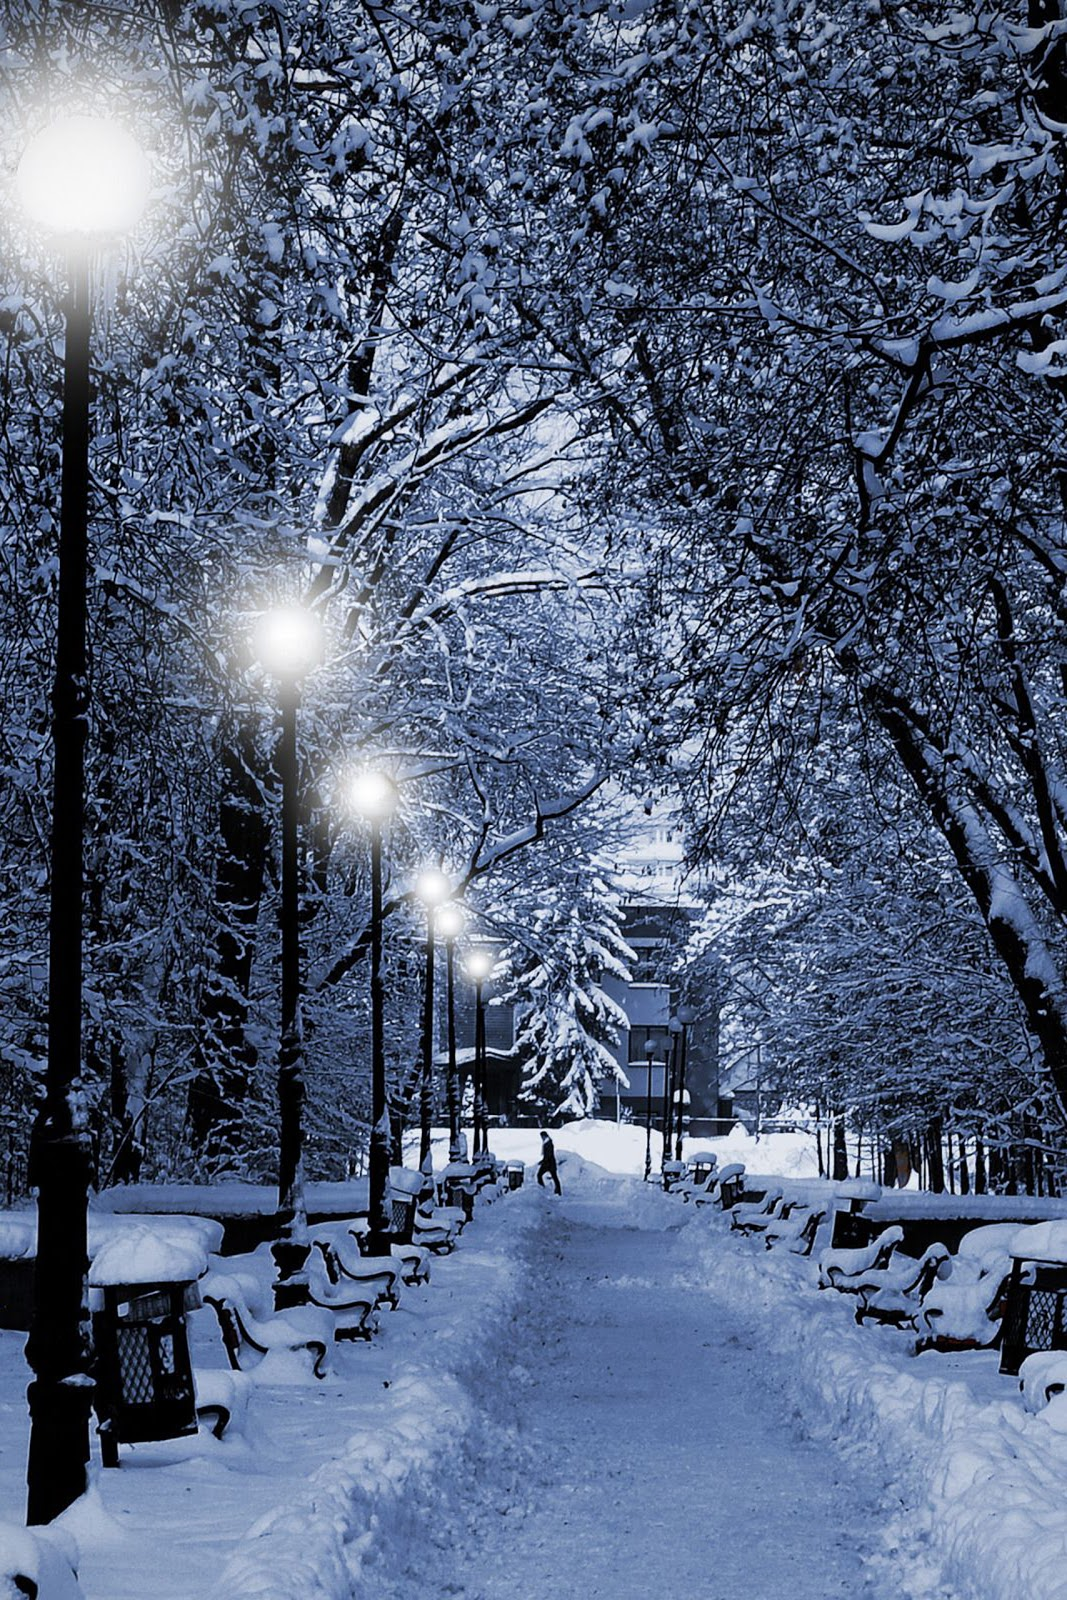 http://3.bp.blogspot.com/-f4xrfws-muw/Tutum9zHFqI/AAAAAAAAB0s/FT3Z8HPDBxg/s1600/Winter+park_iphone+_new+years+eve_christmas_santa_wallpaper_1.jpg